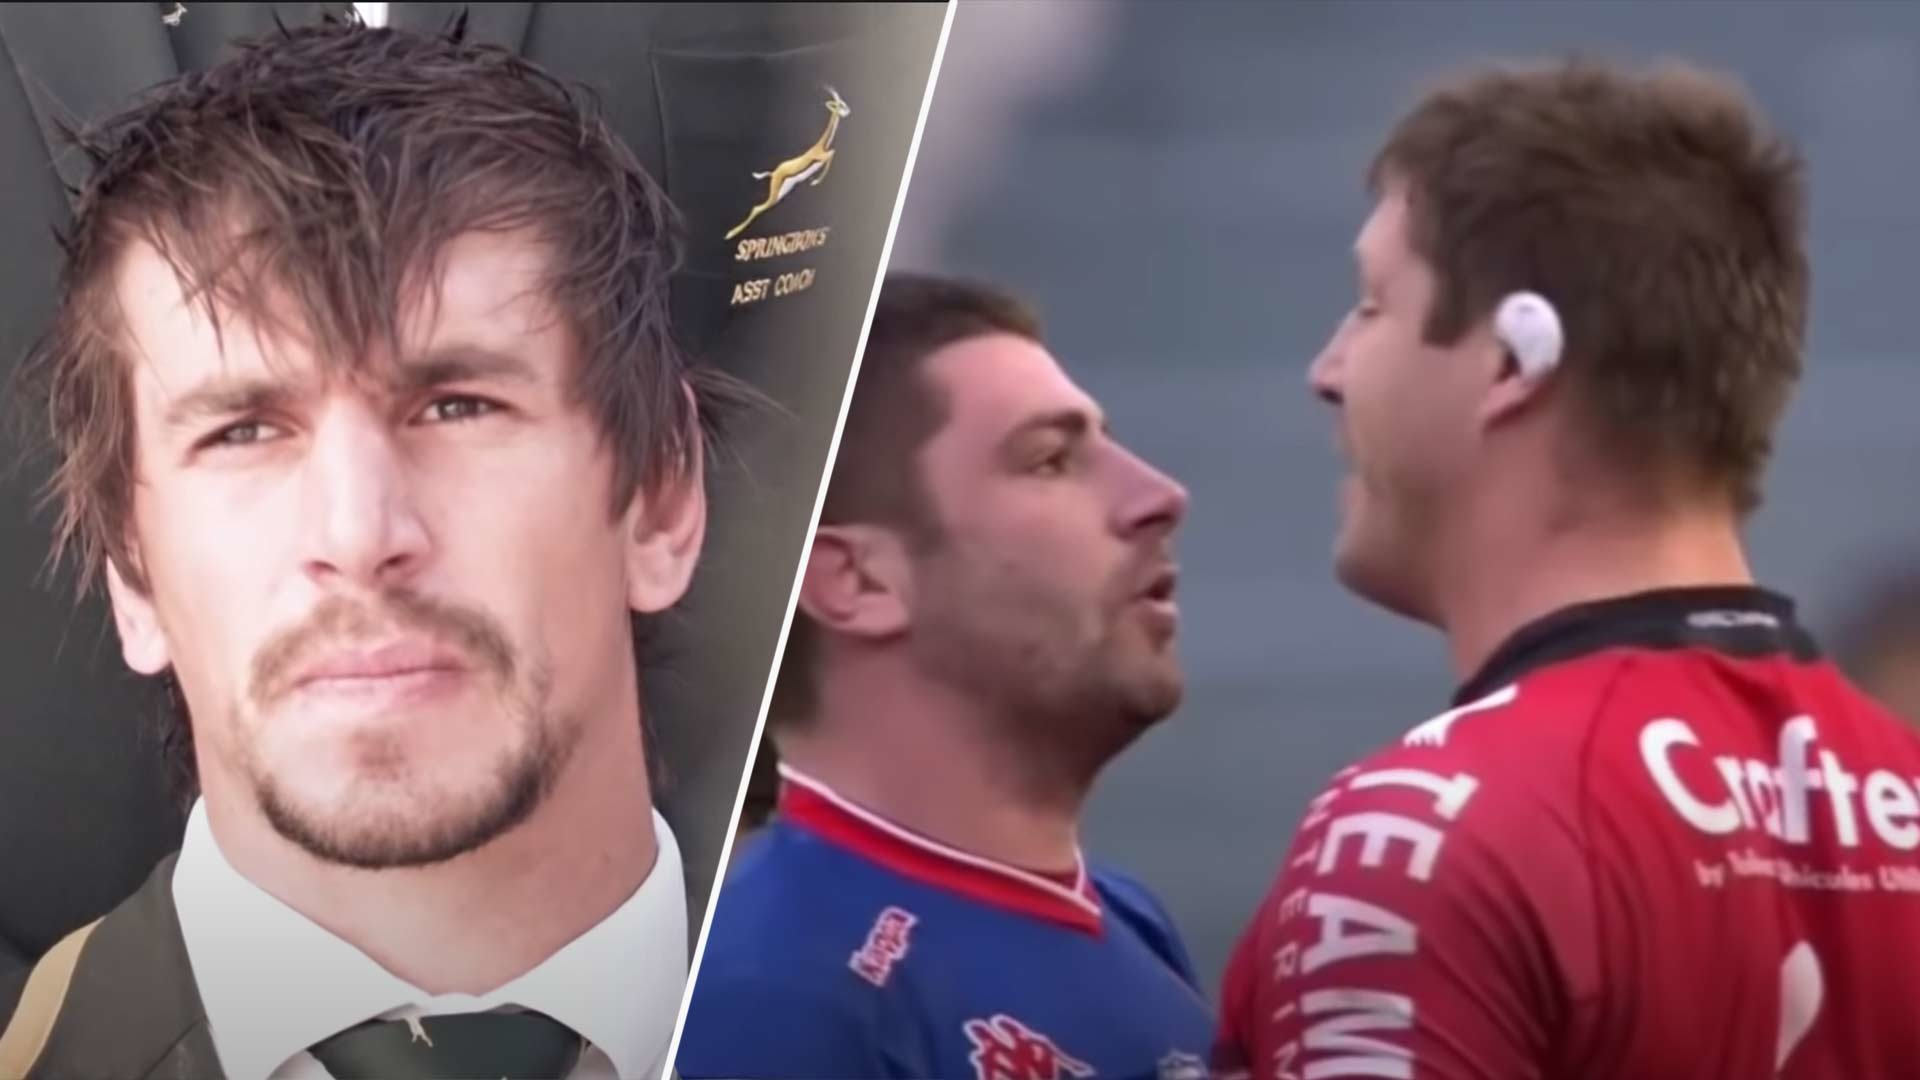 Top rugby referee believes Springbok legend Bakkies Botha  may have struggled to excel in today's rugby world